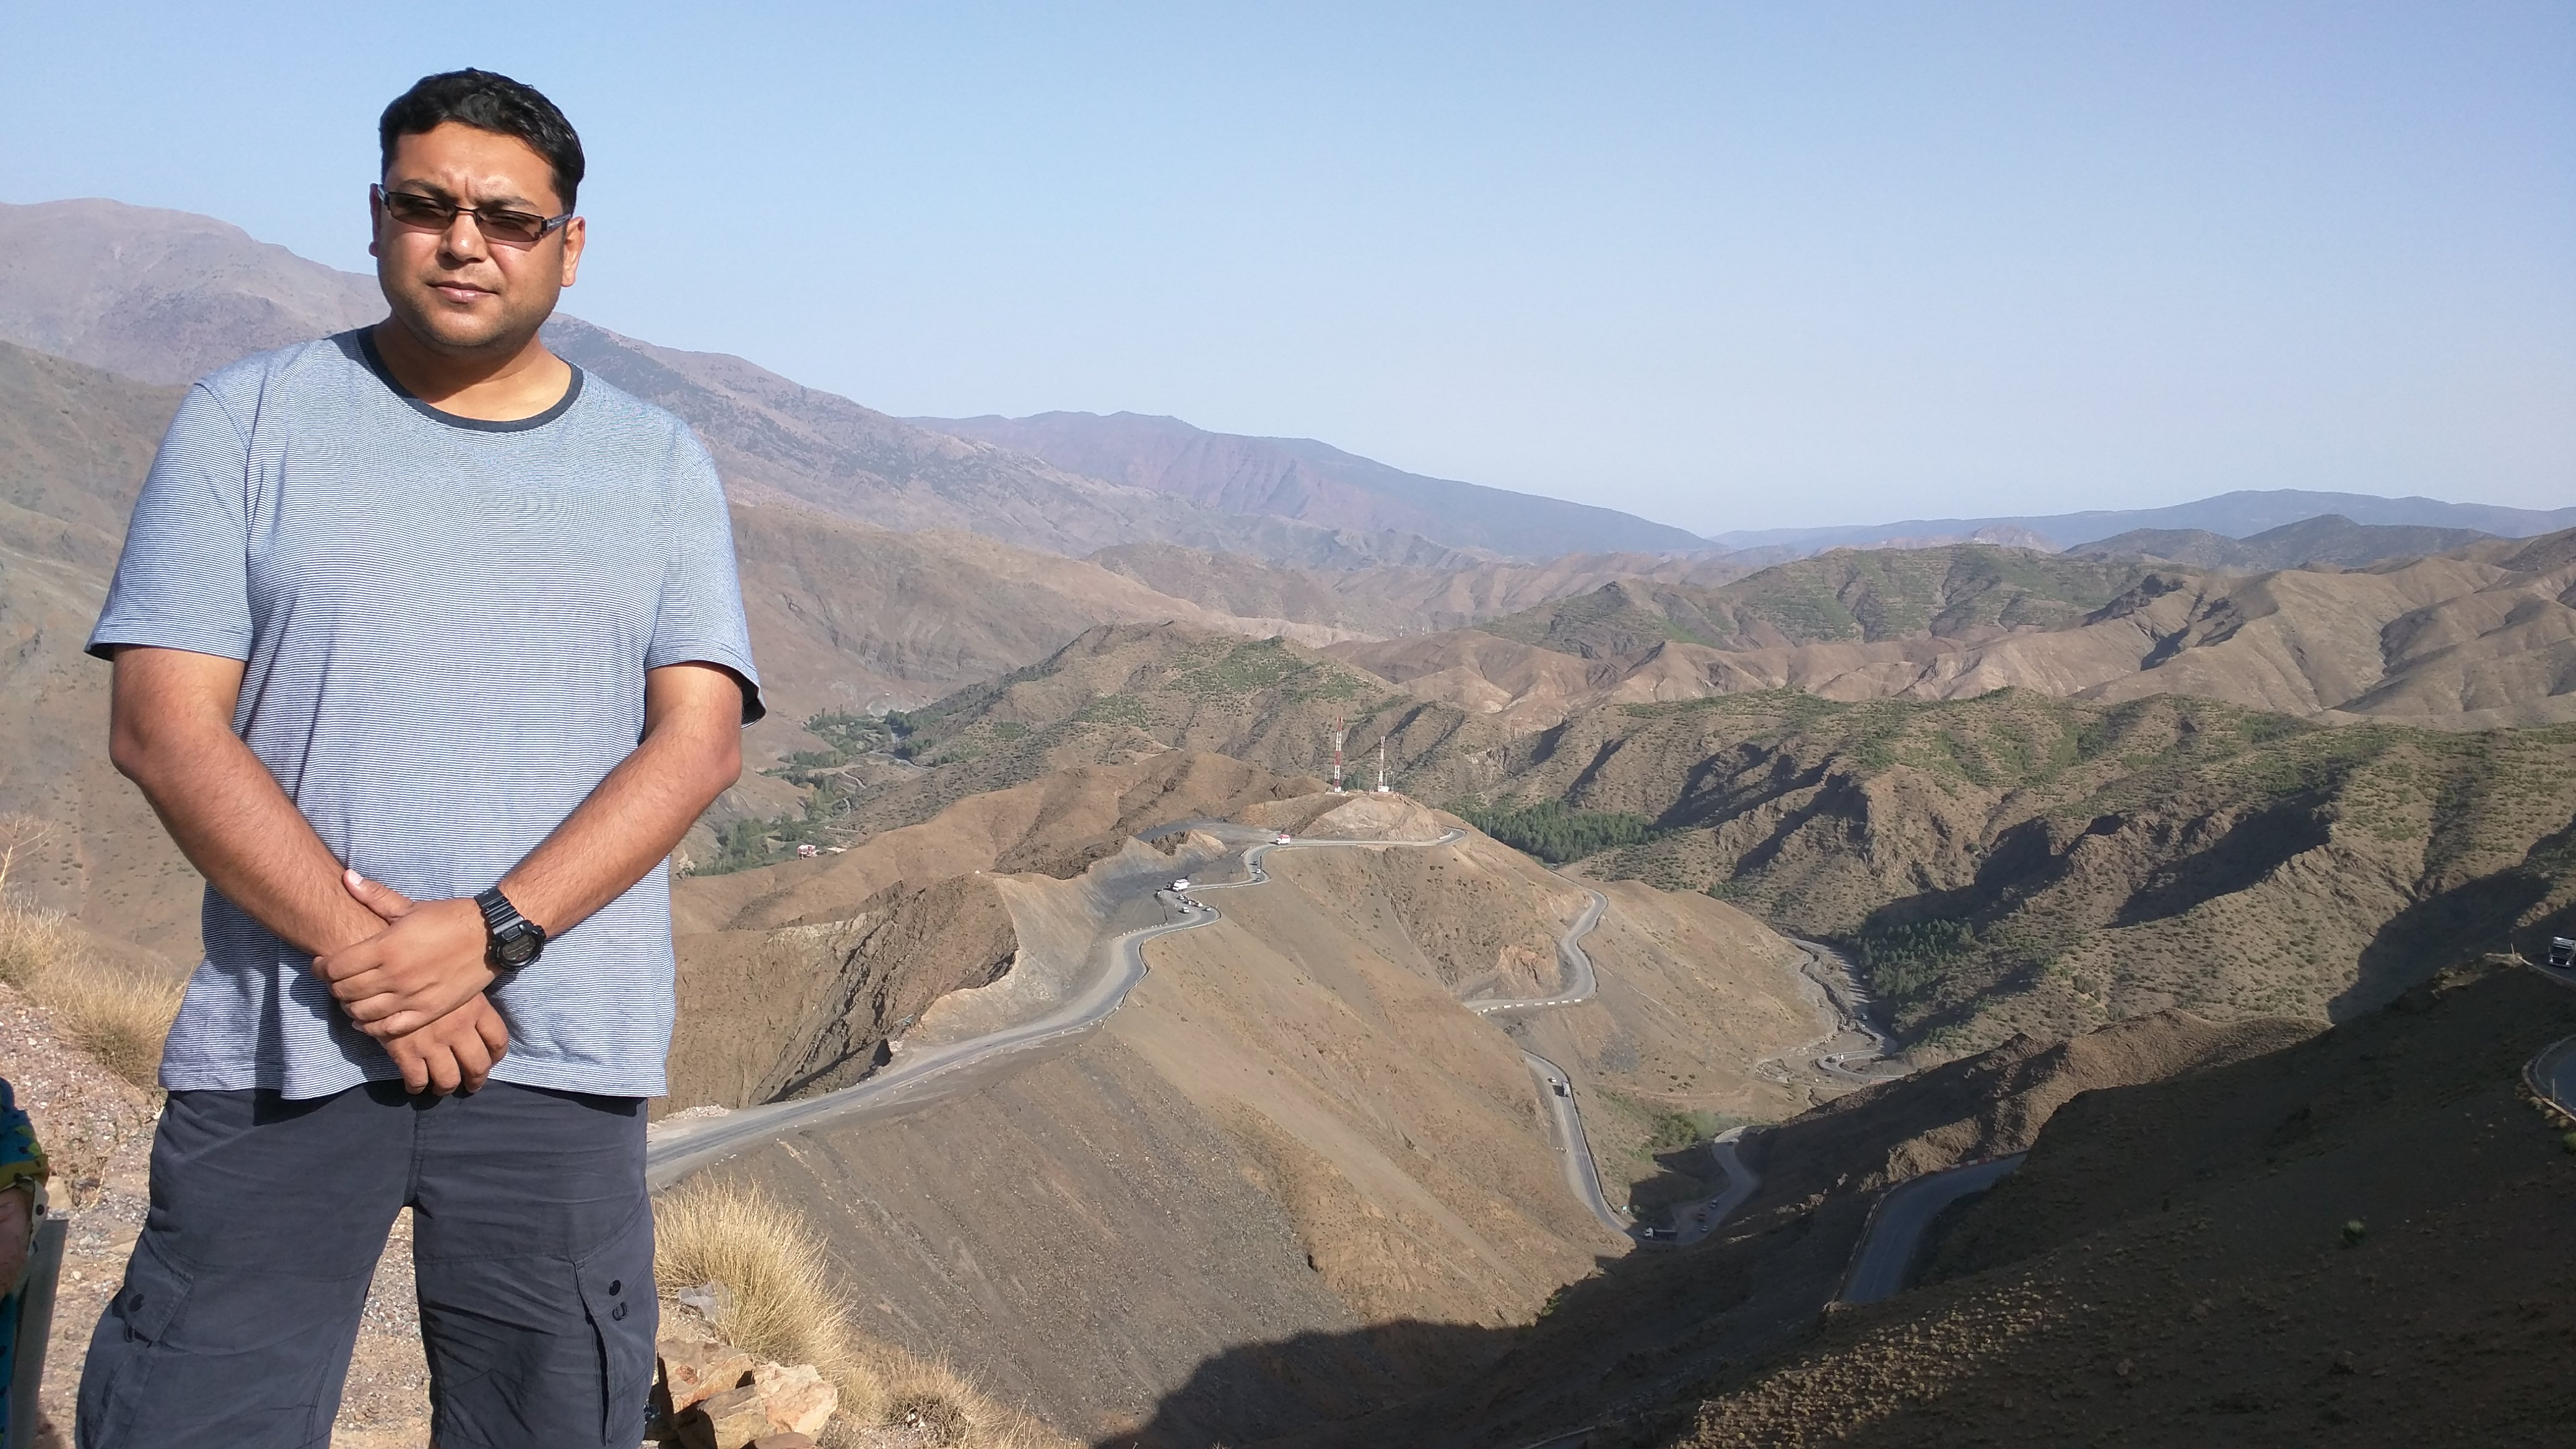 Tizi n'Tichka - the highest mountain pass in North Africa